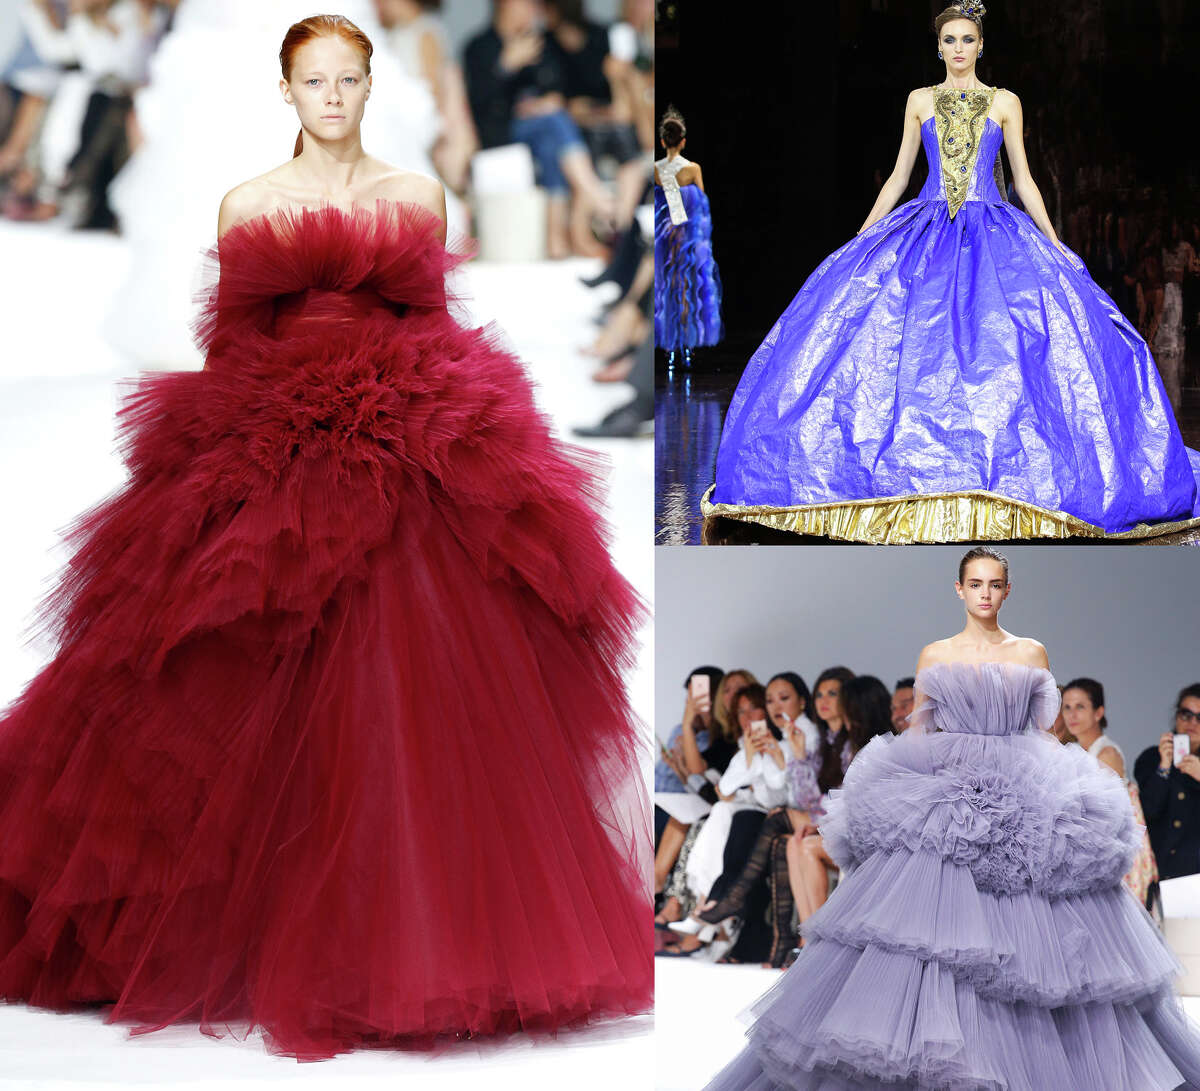 Princess gowns These are straight out of a Taylor Swift video. (Giambattista Valli, Guo Pei)